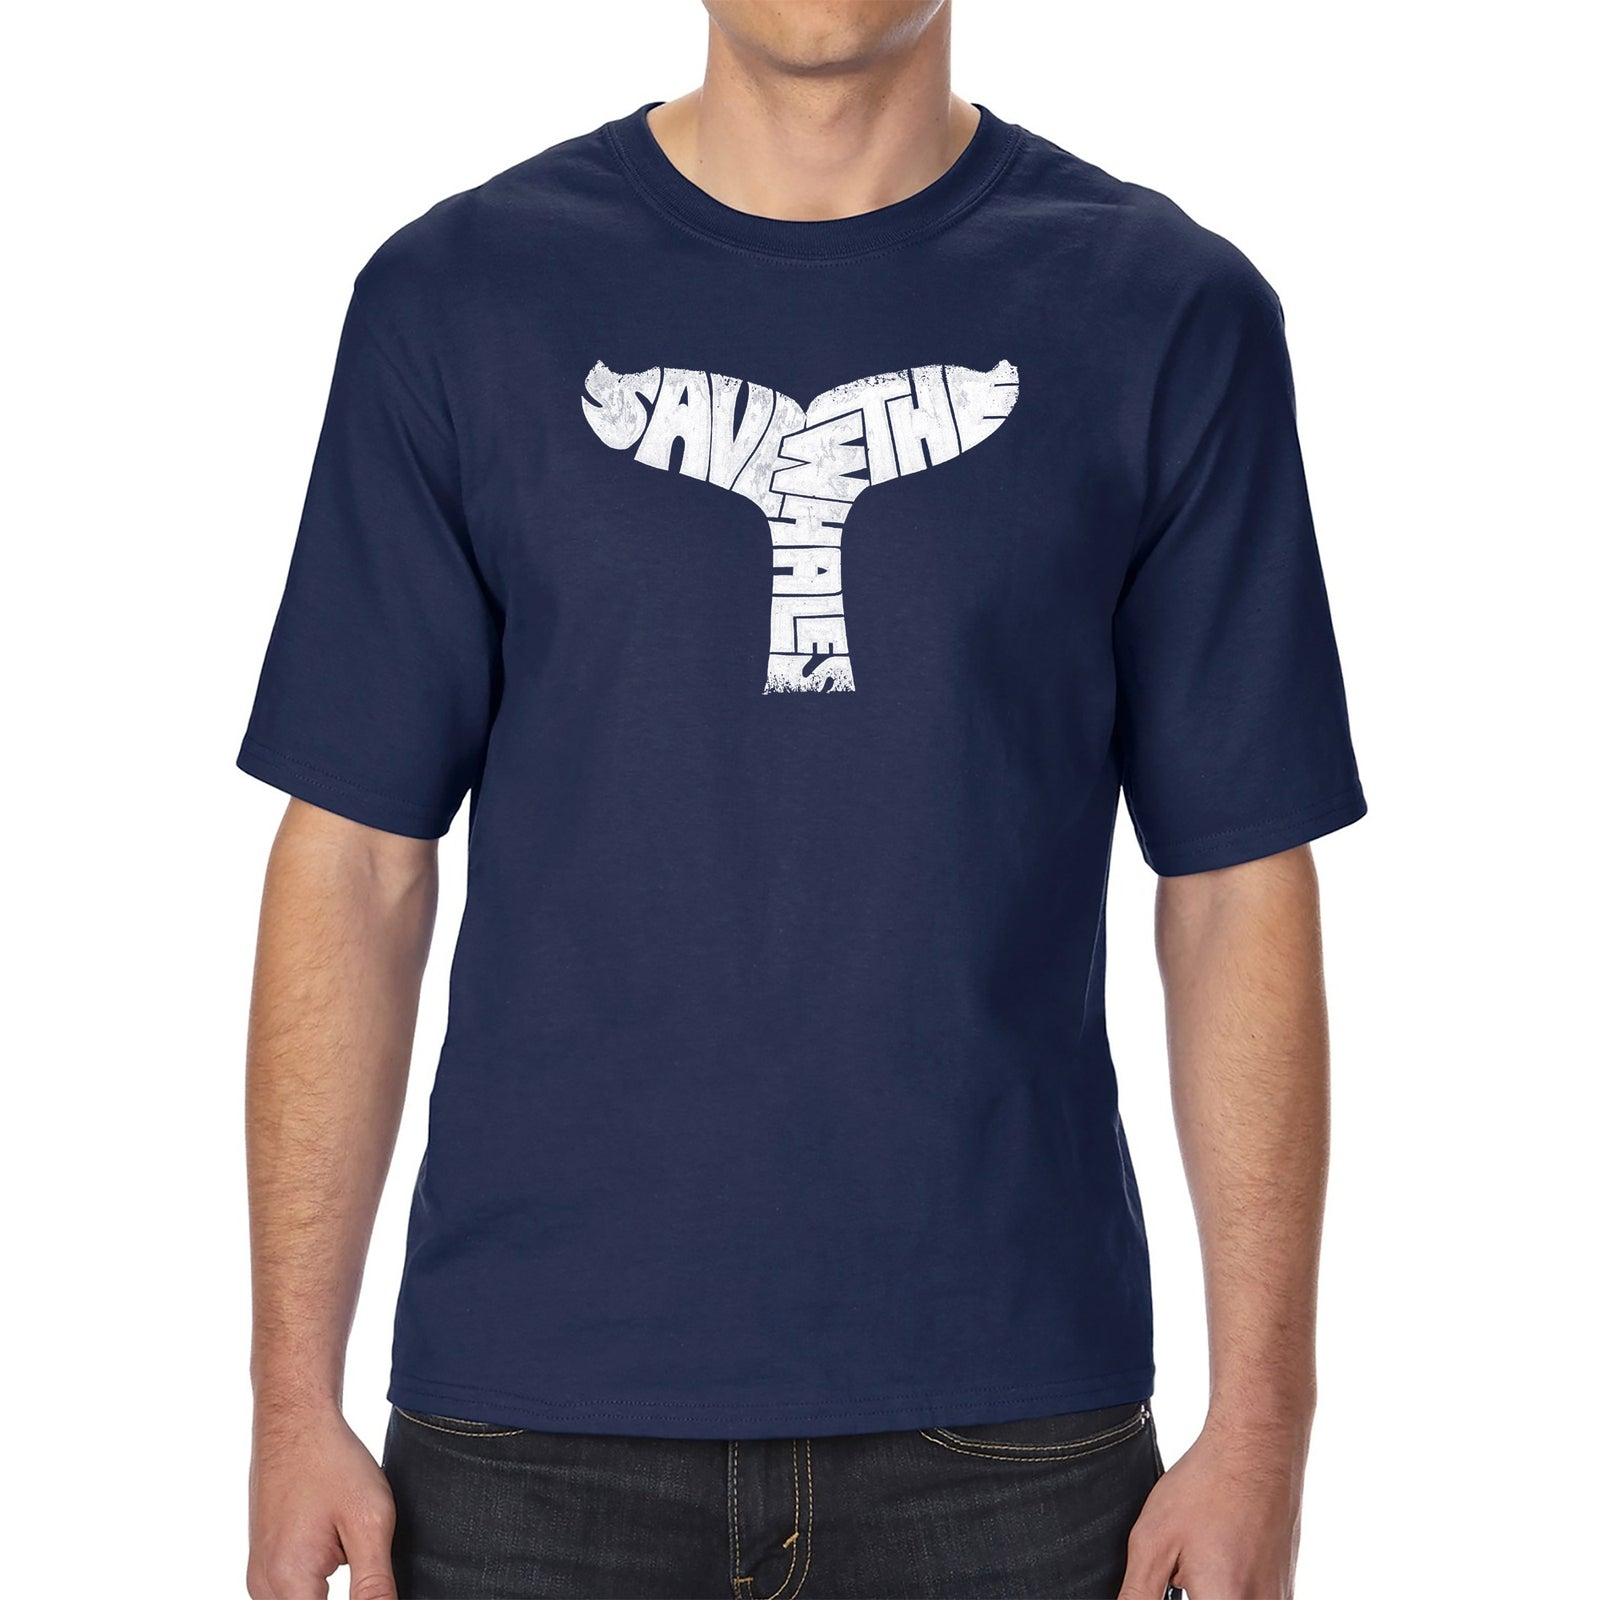 Men's Tall and Long Word Art T-shirt - SAVE THE WHALES